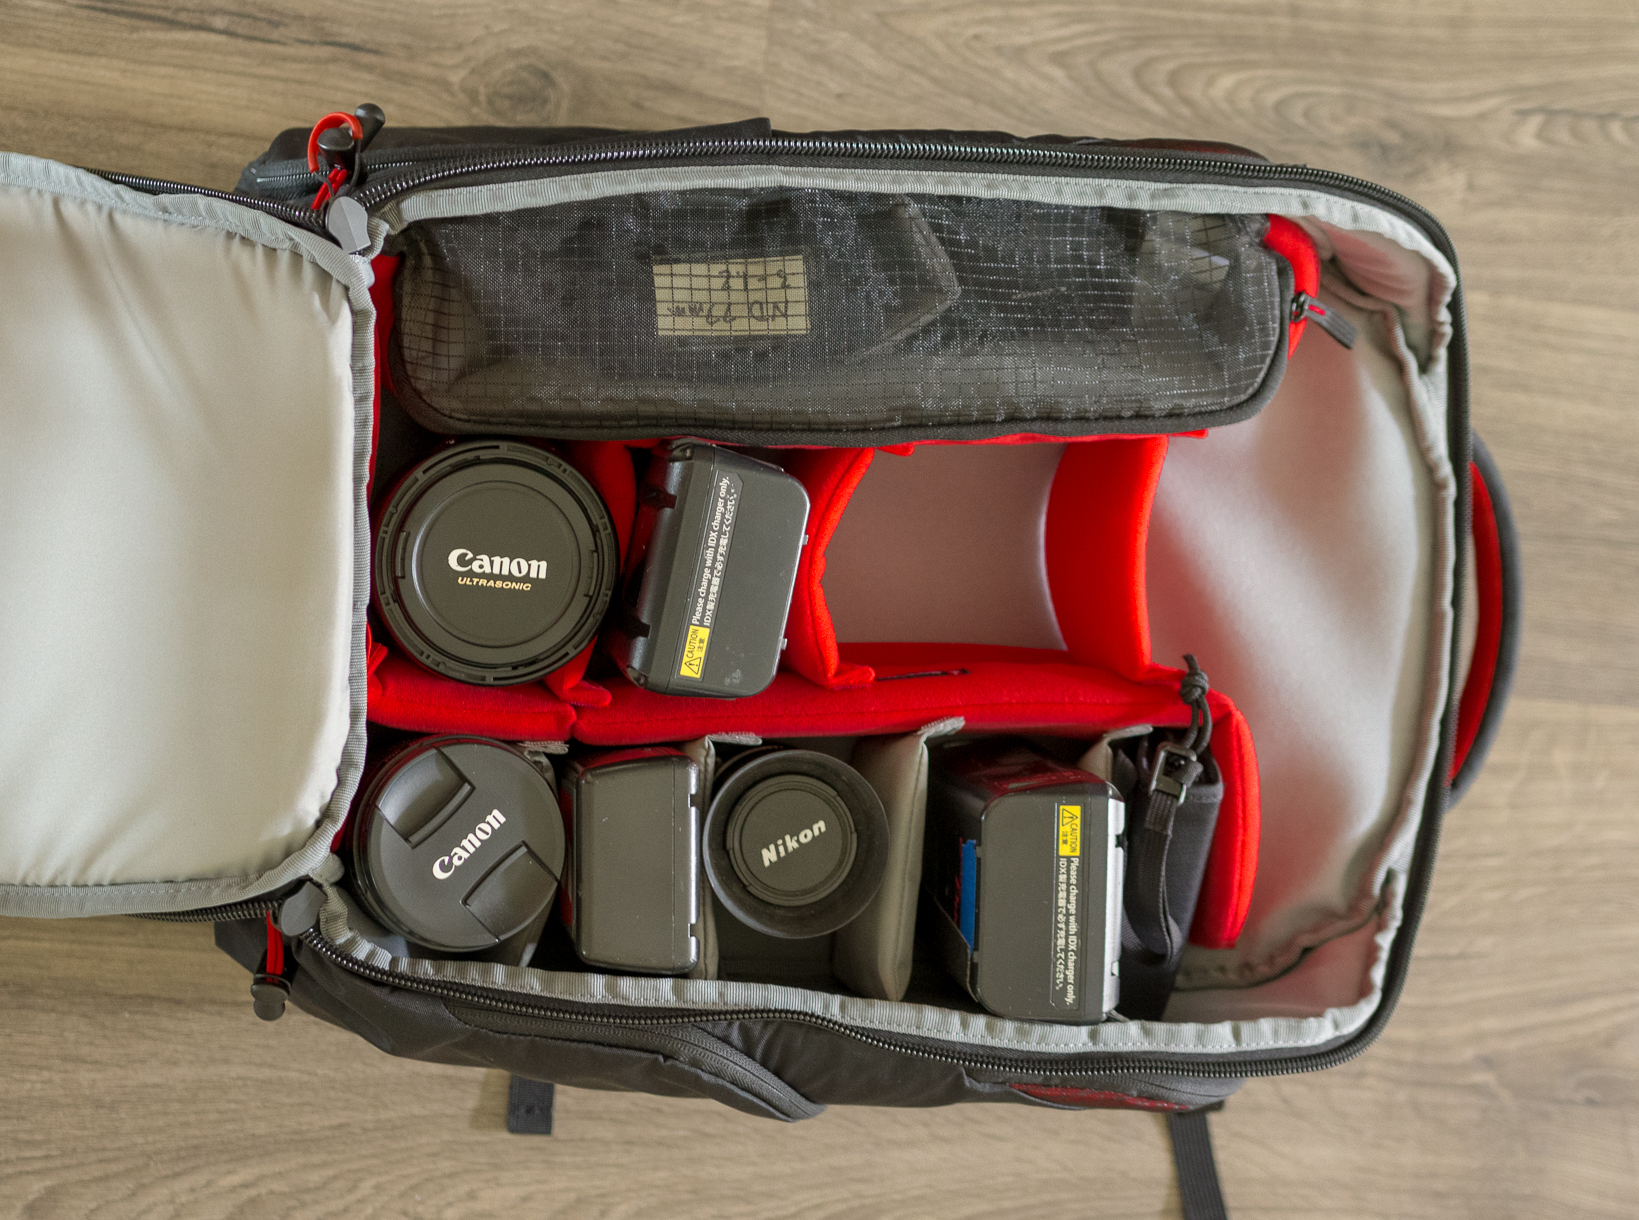 Manfrotto Pro Light Cinematic Camera Bags Review: Balance and Expand 4